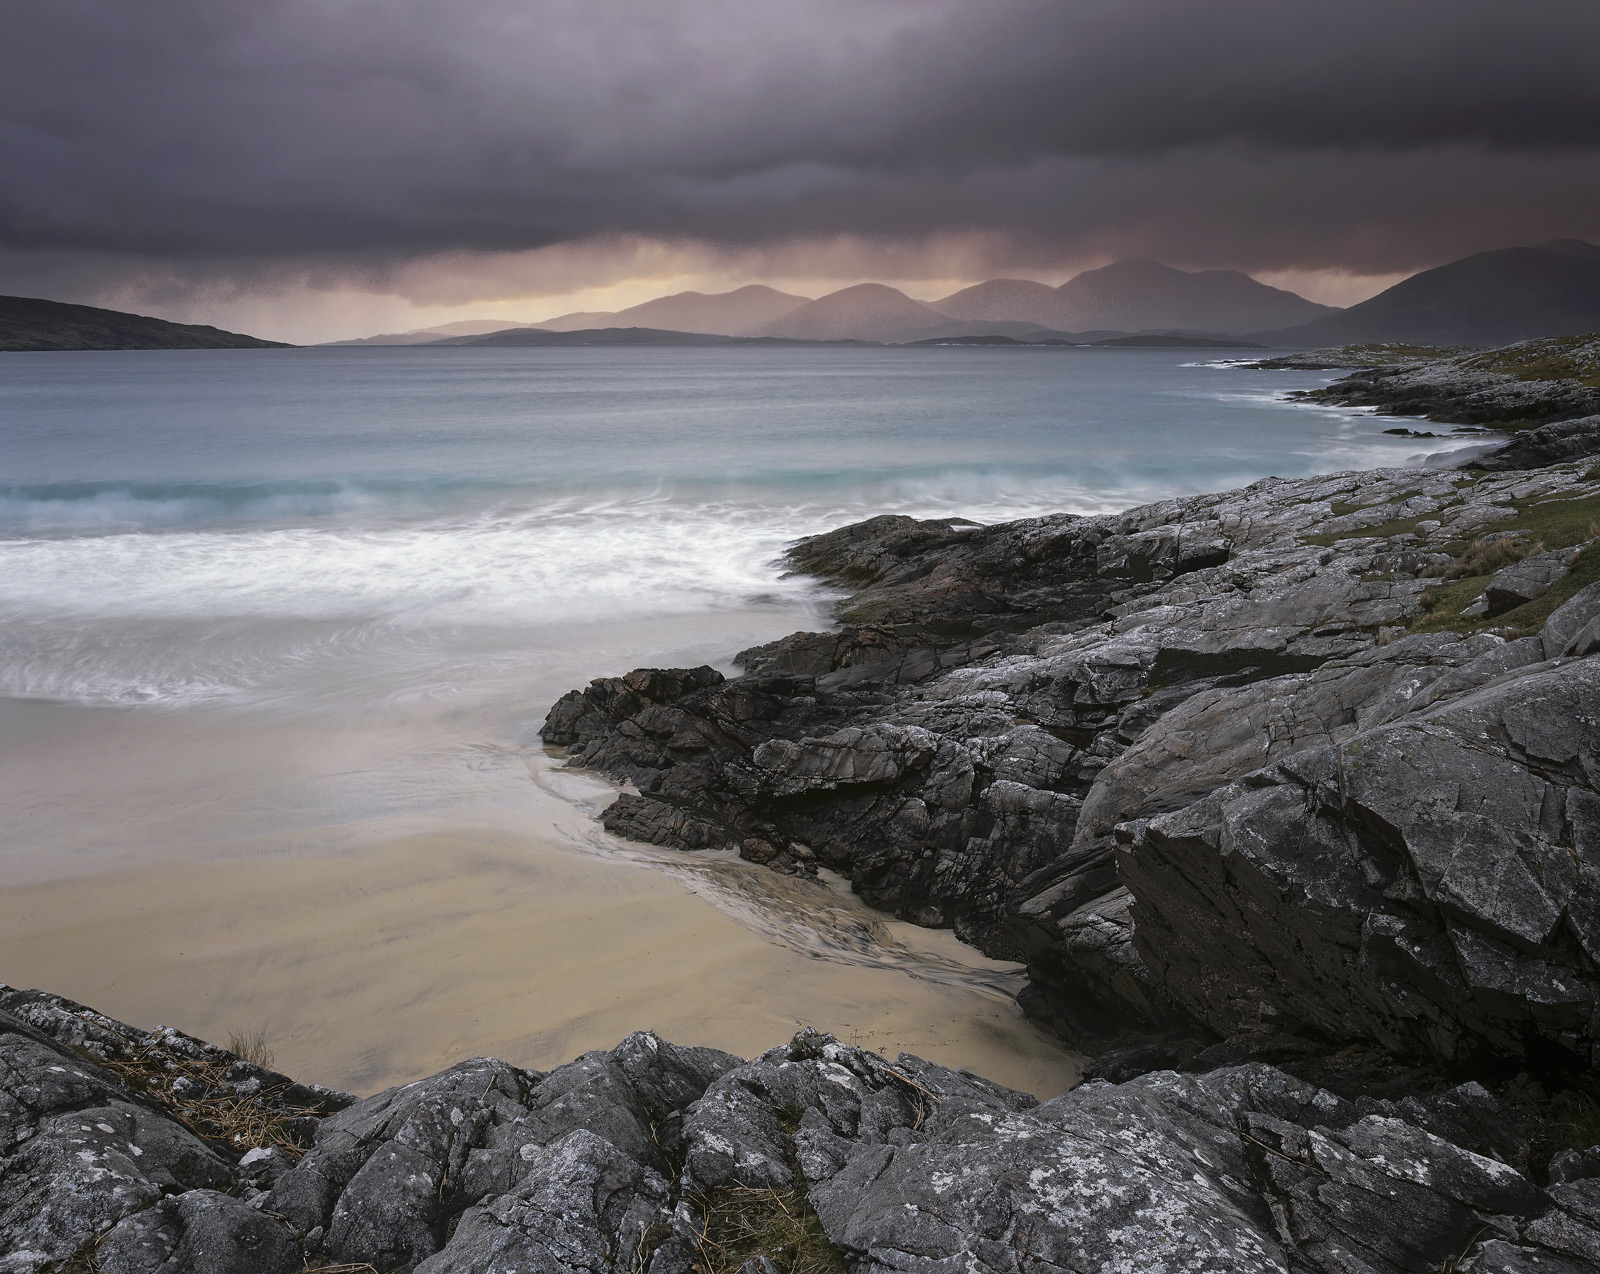 Quite possibly one of the most beautiful of Harris beaches, Traigh Rosamol has a long terrace of golden sand unblemished by seaweed...